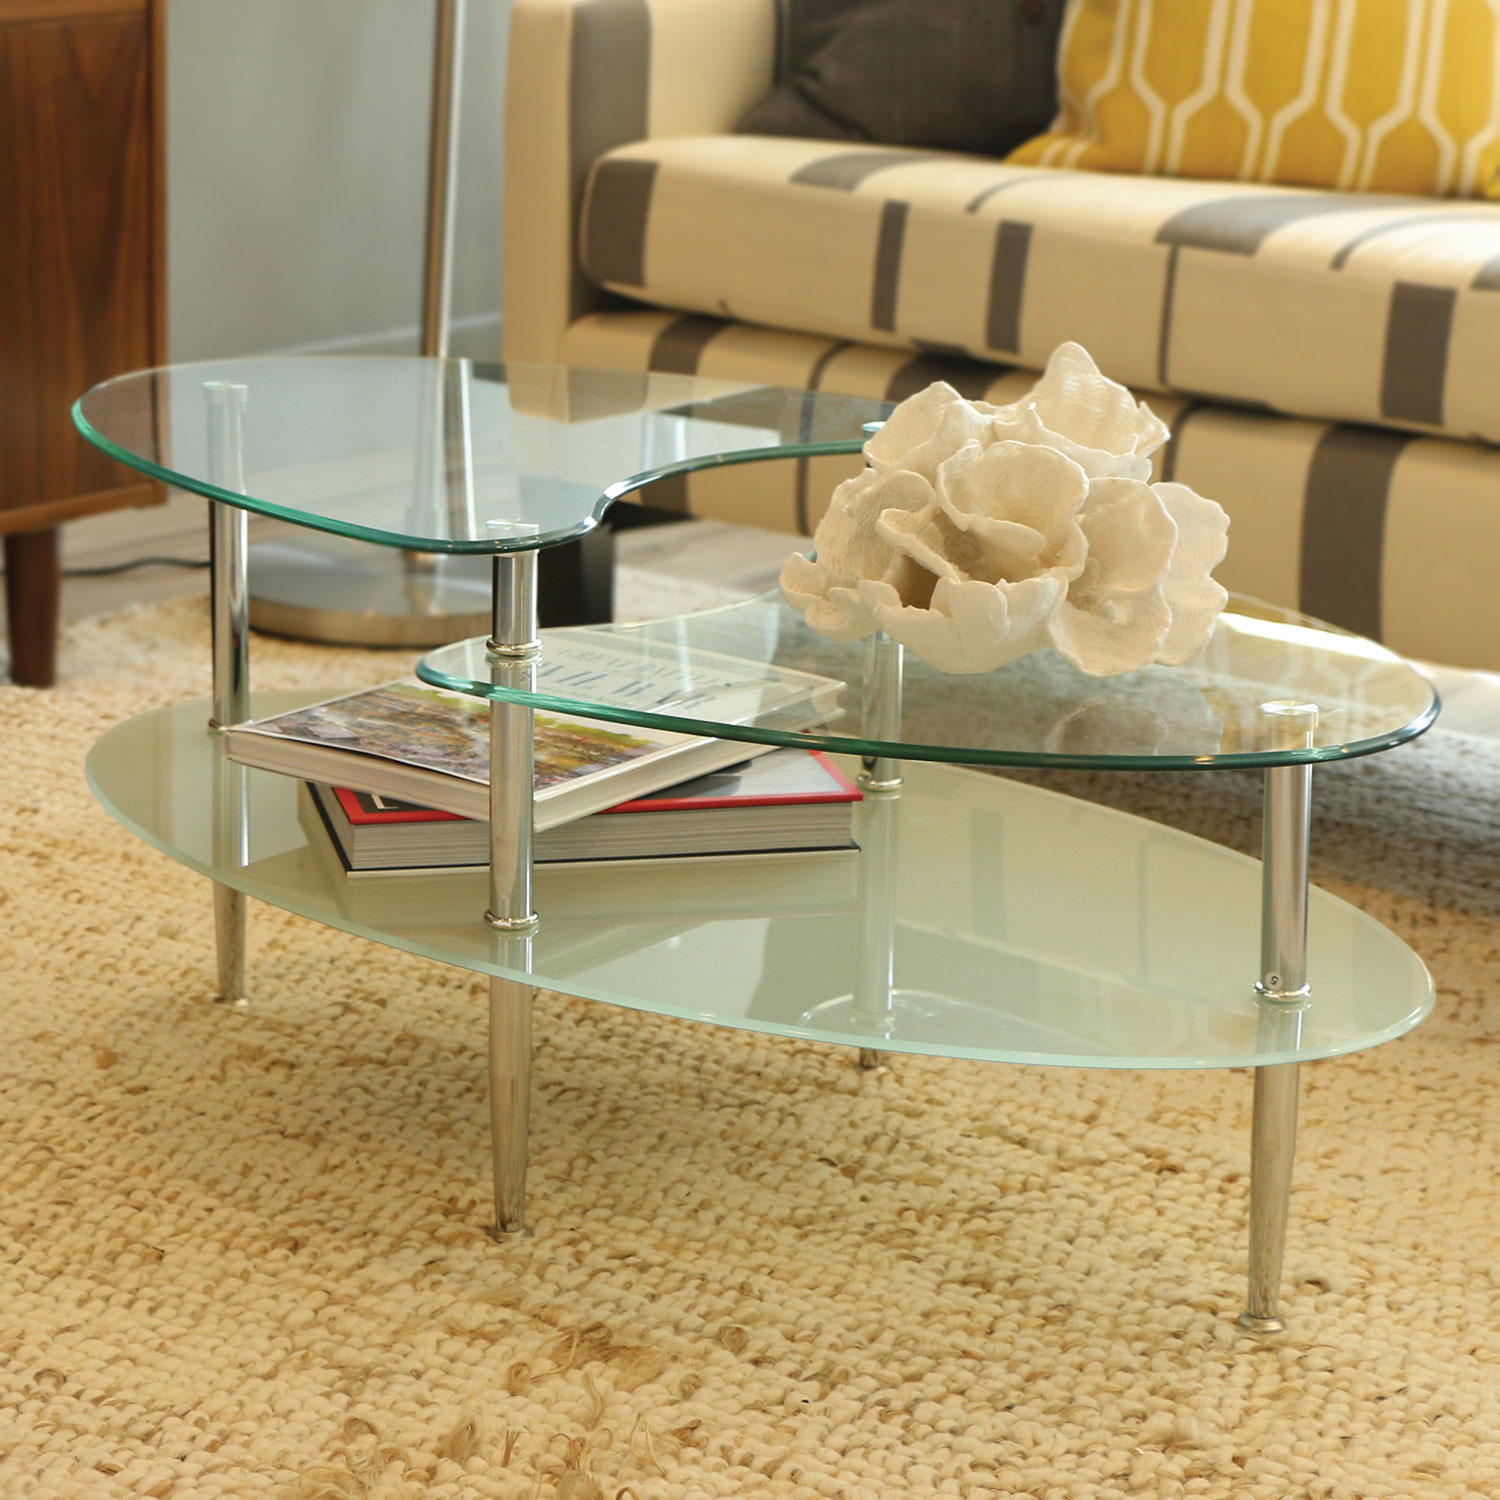 mariner glass oval coffee table  silver  coffee tables  best  - mariner glass oval coffee table  silver  coffee tables  best buy canada